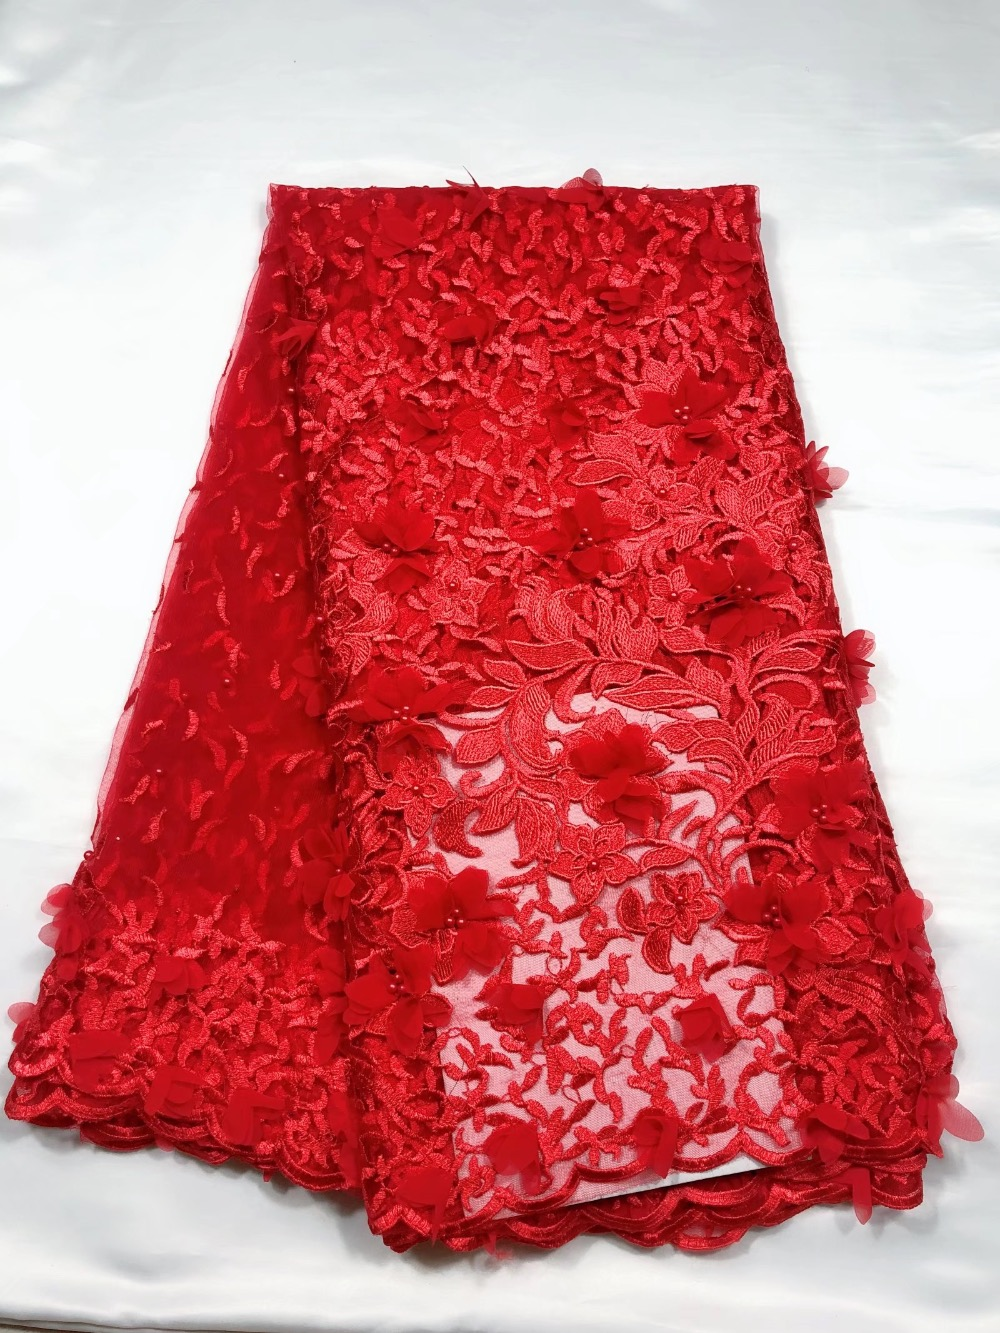 2019 French Lace Fabric Wedding Red White 3 D Applique Beads African Tulle Lace Fabric 3D